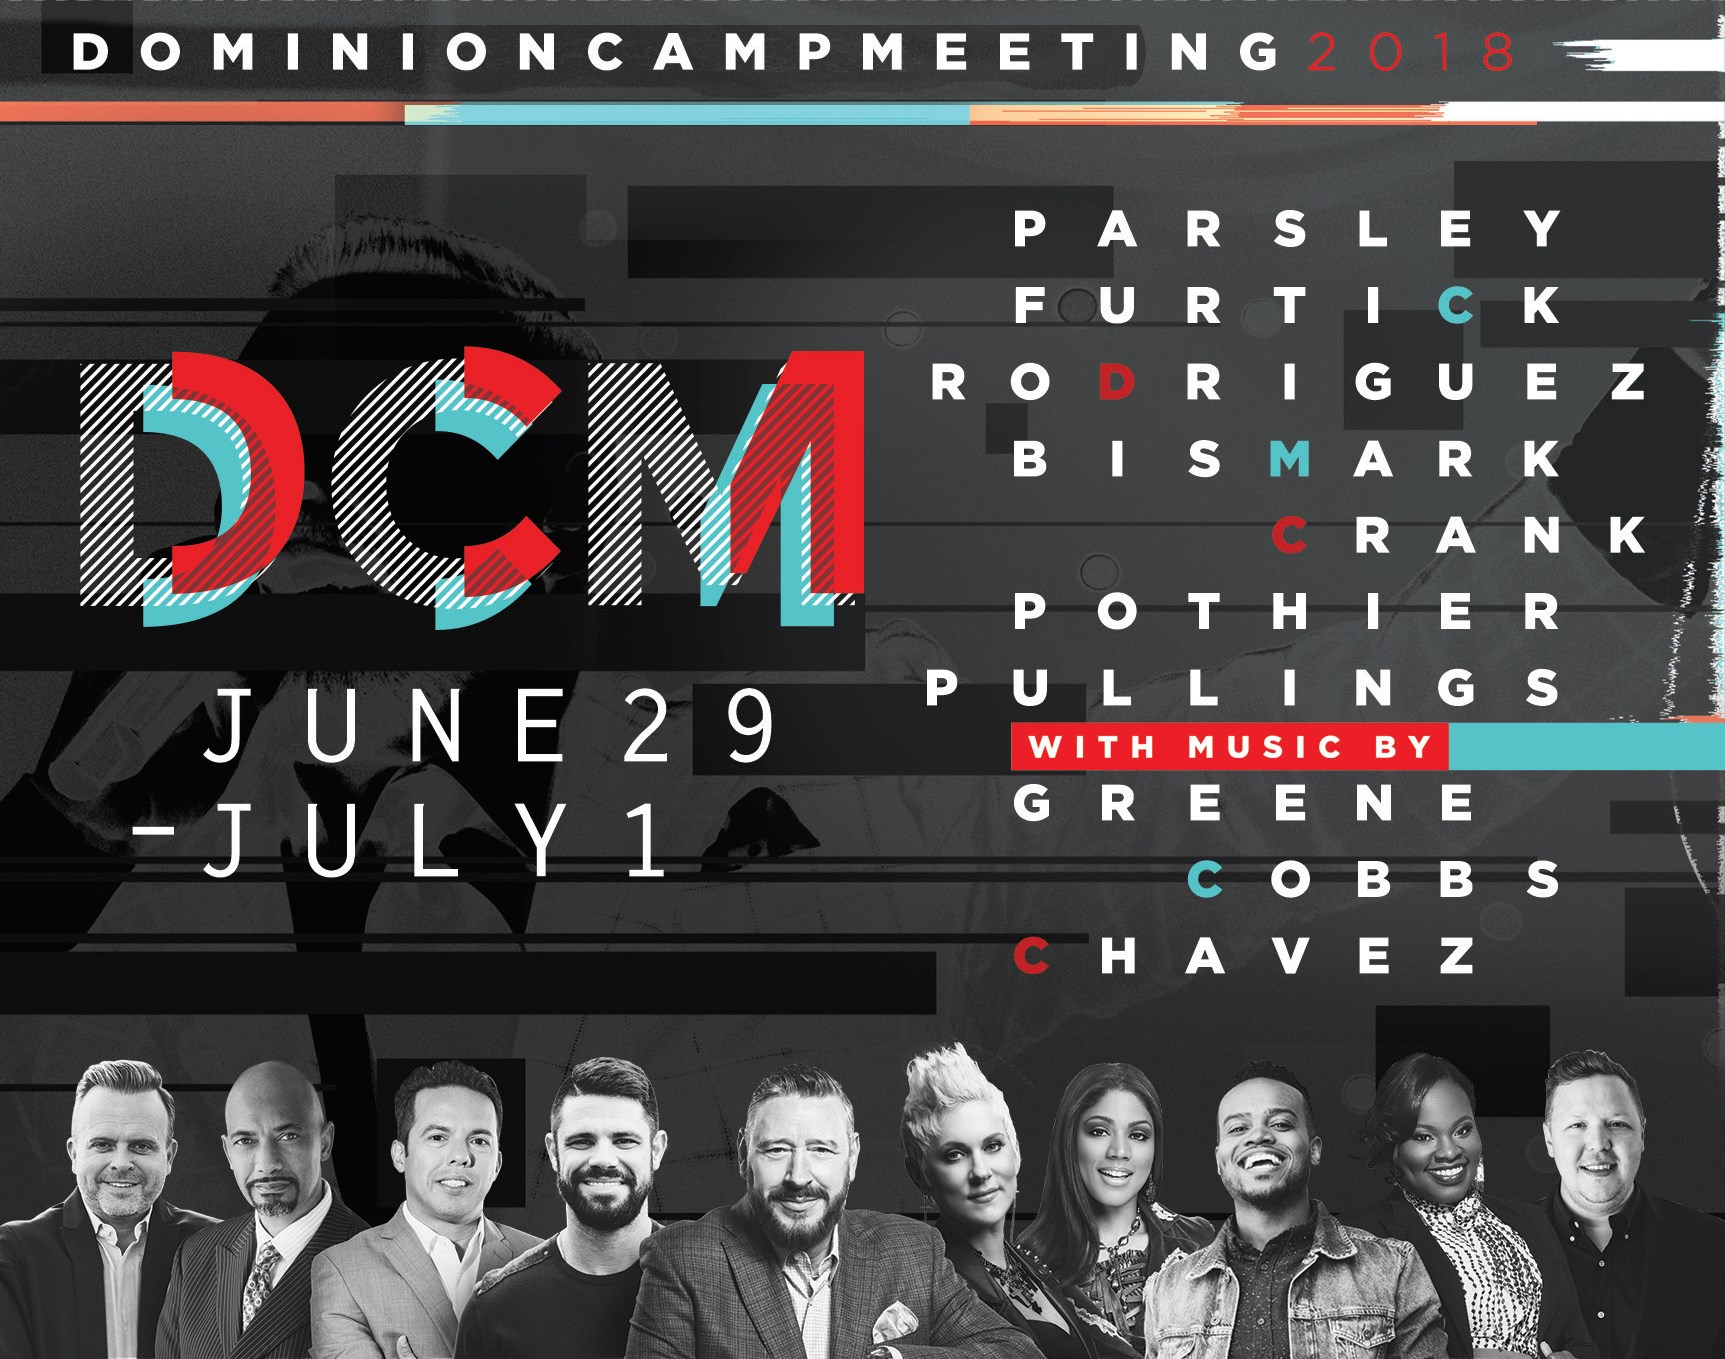 Dominion Camp Meeting 2018